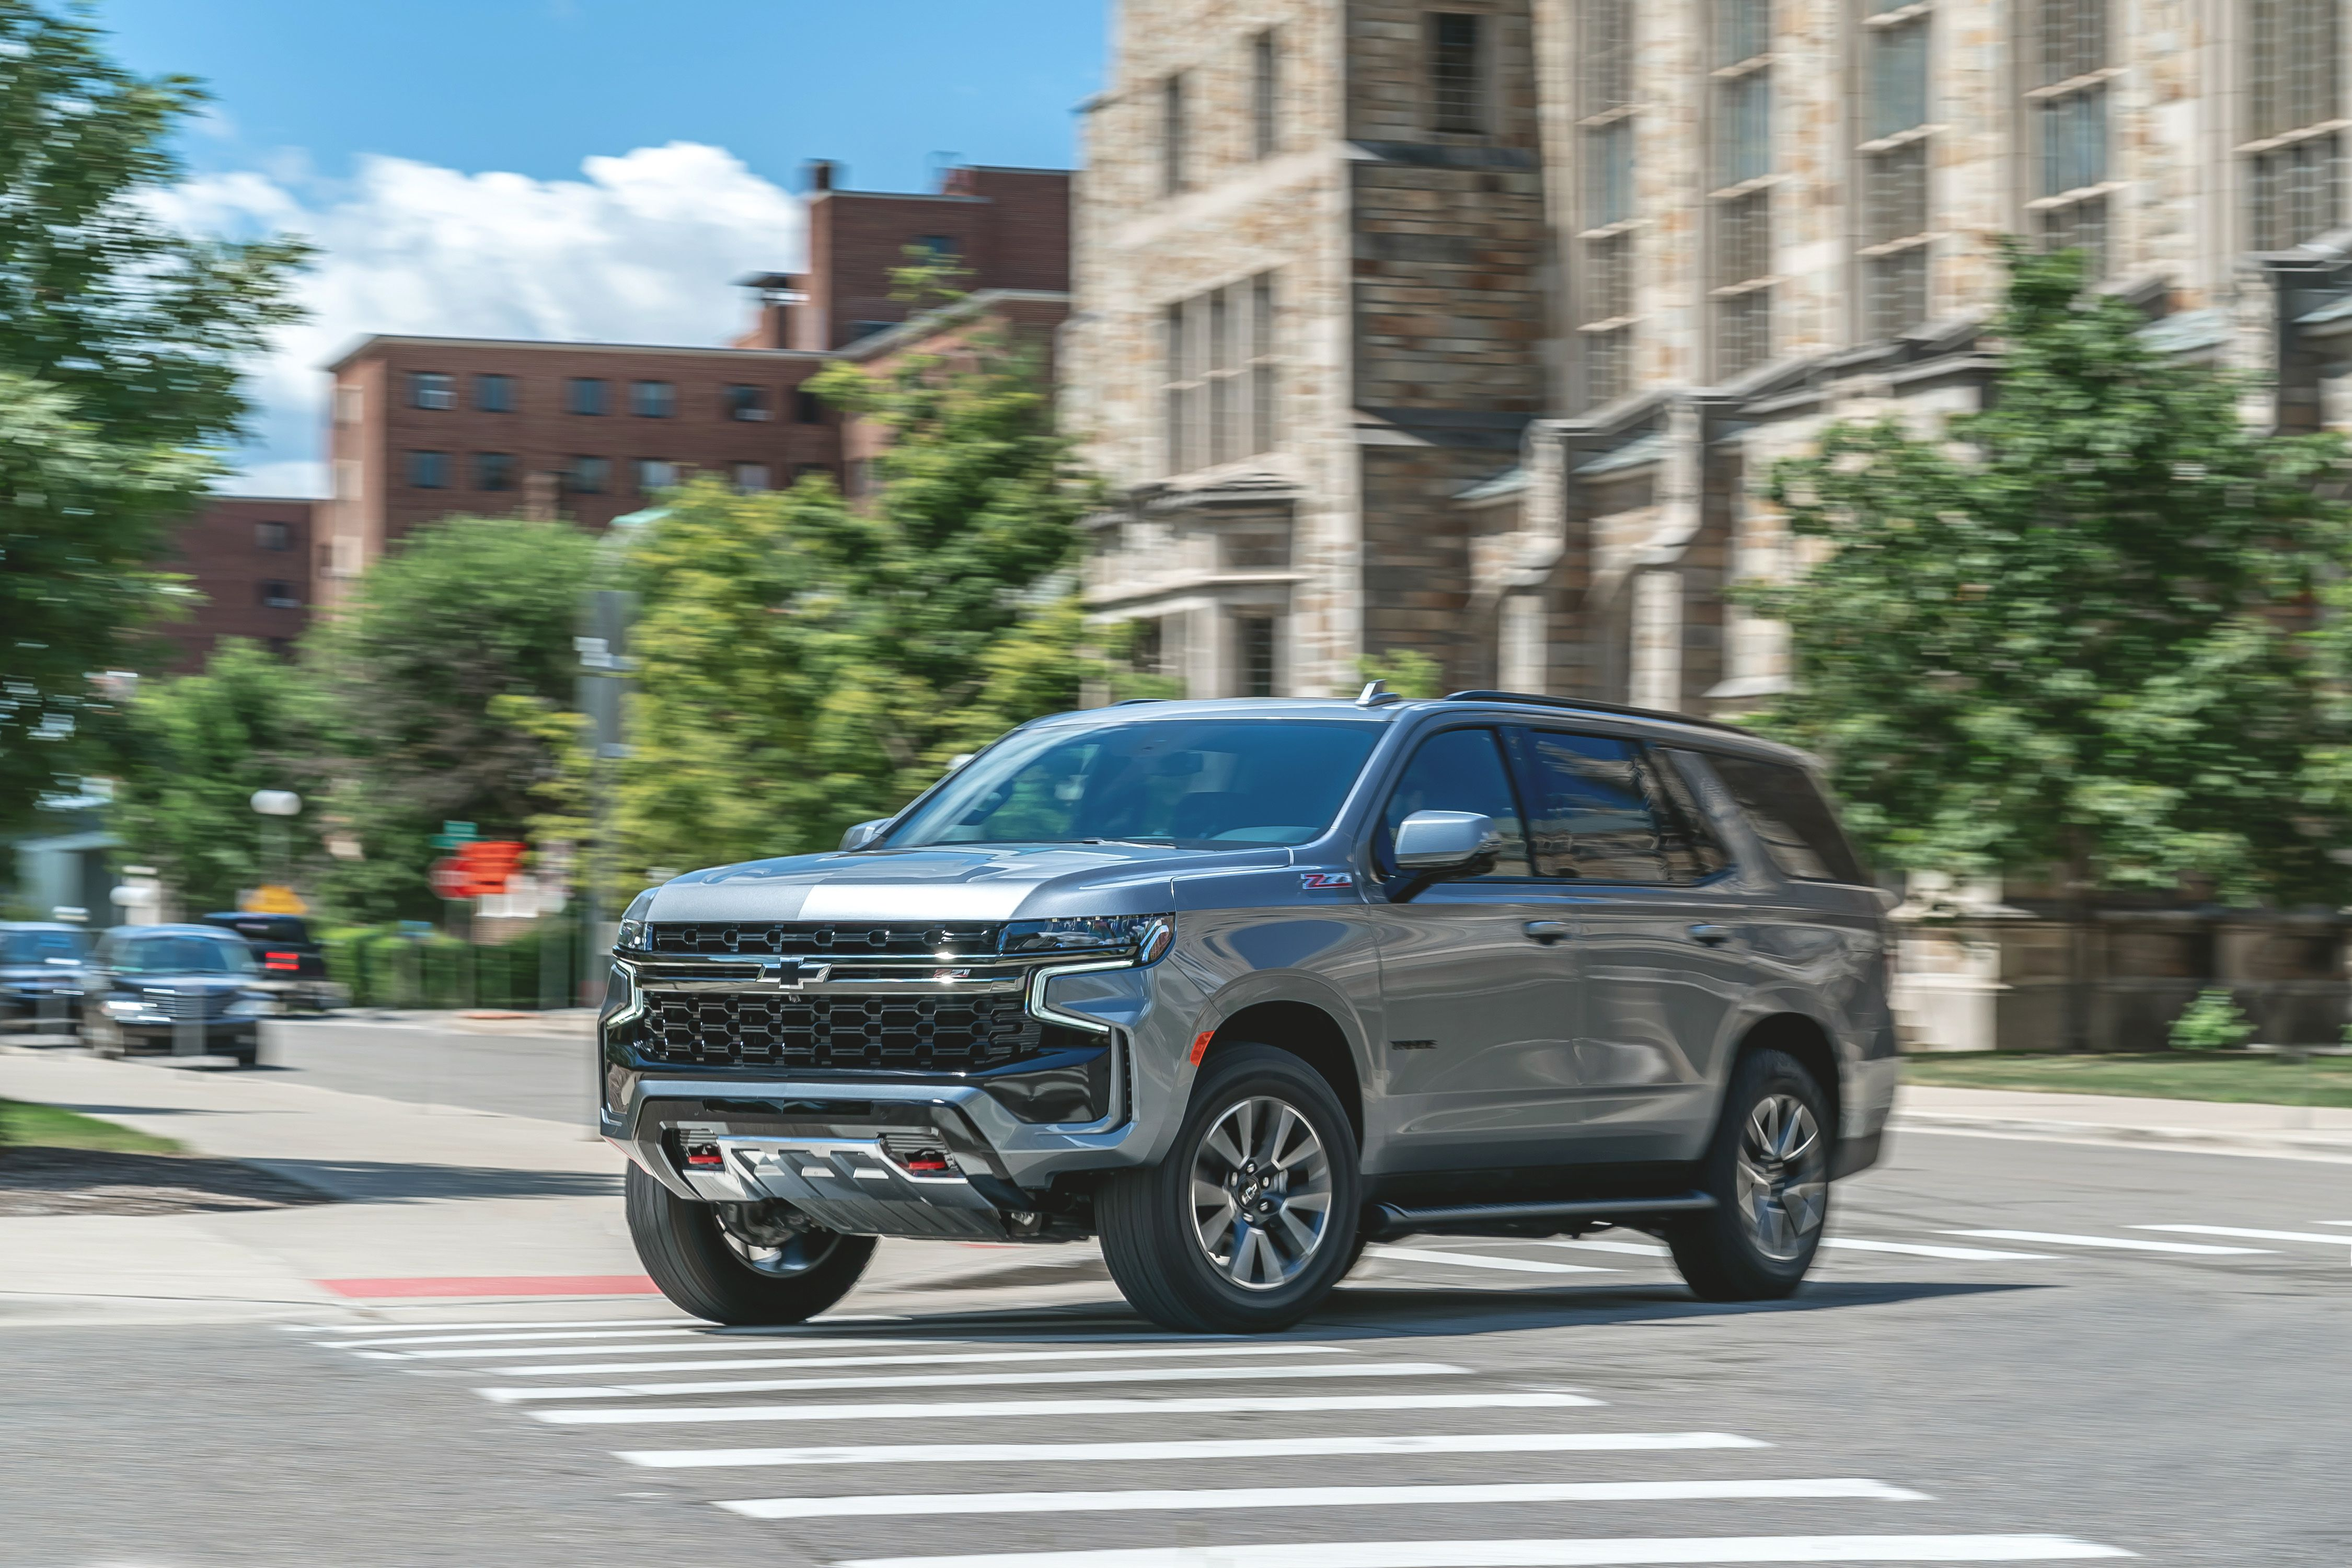 2021 Chevrolet Tahoe Review, Pricing, and Specs